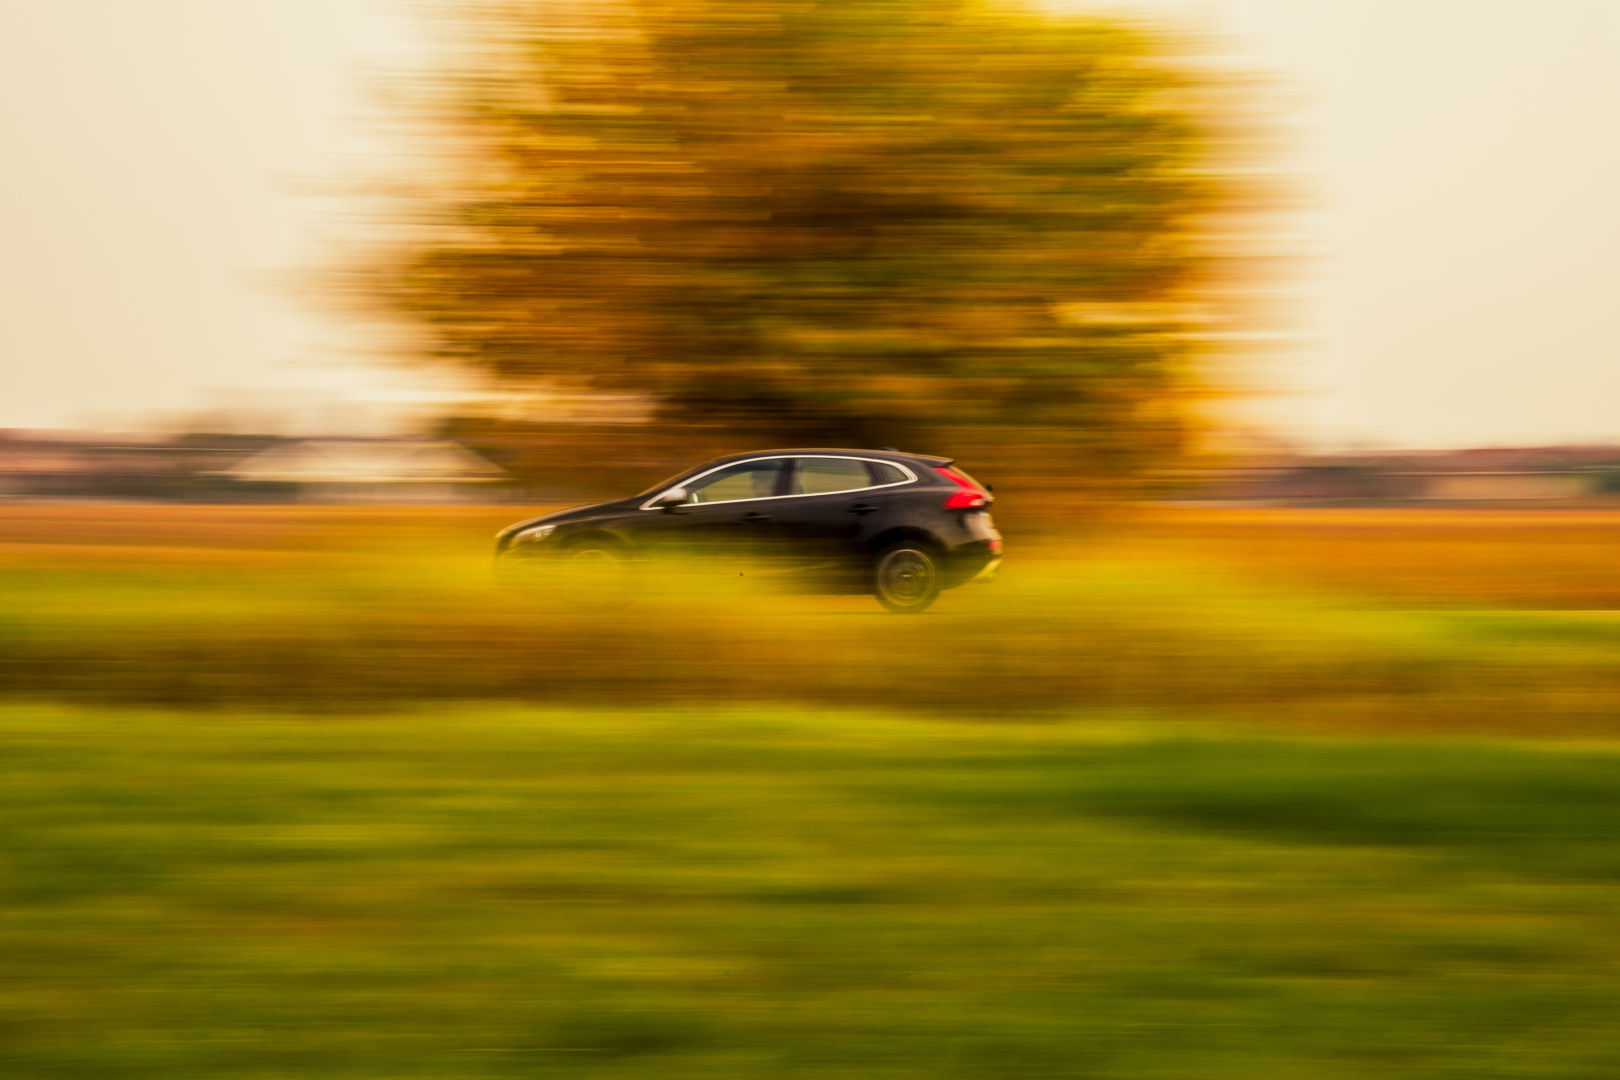 bg-driving-fast-countryside-411073-unsplash